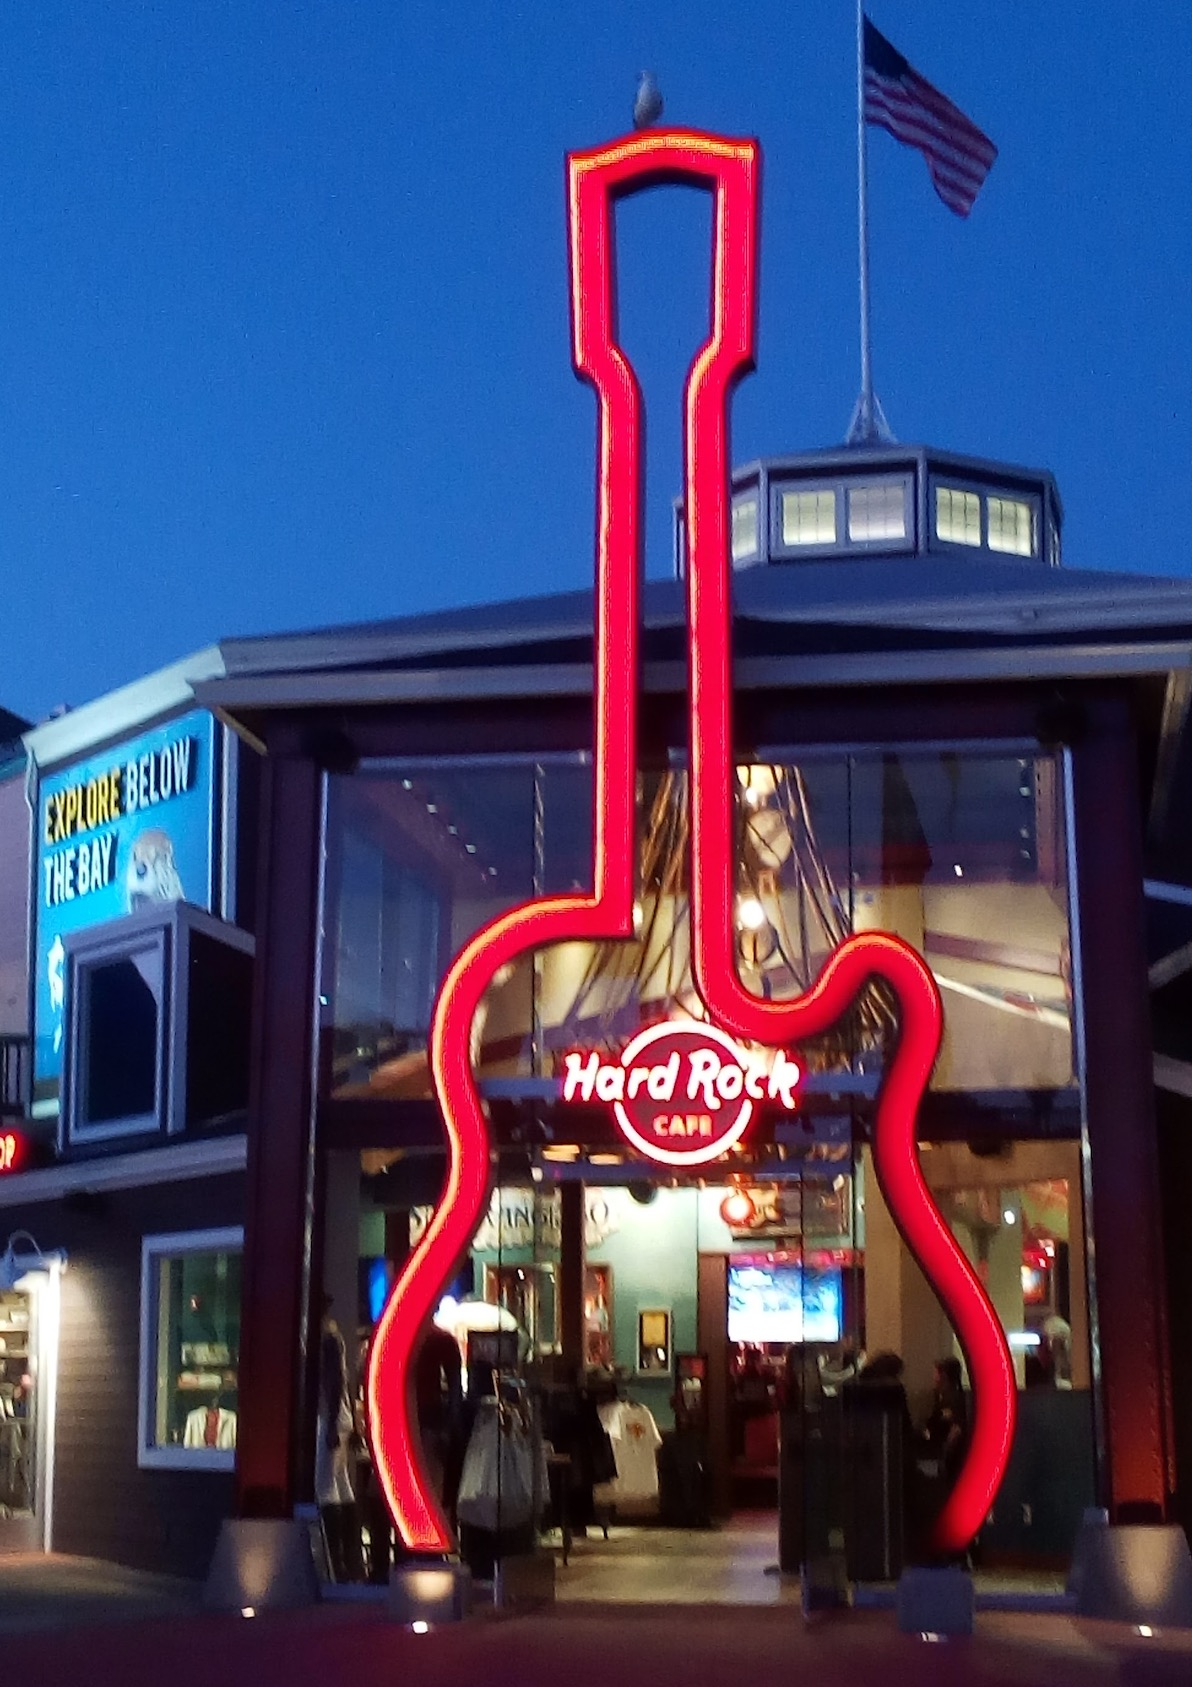 San Francisco Bay Area - Hard Rock Cafe